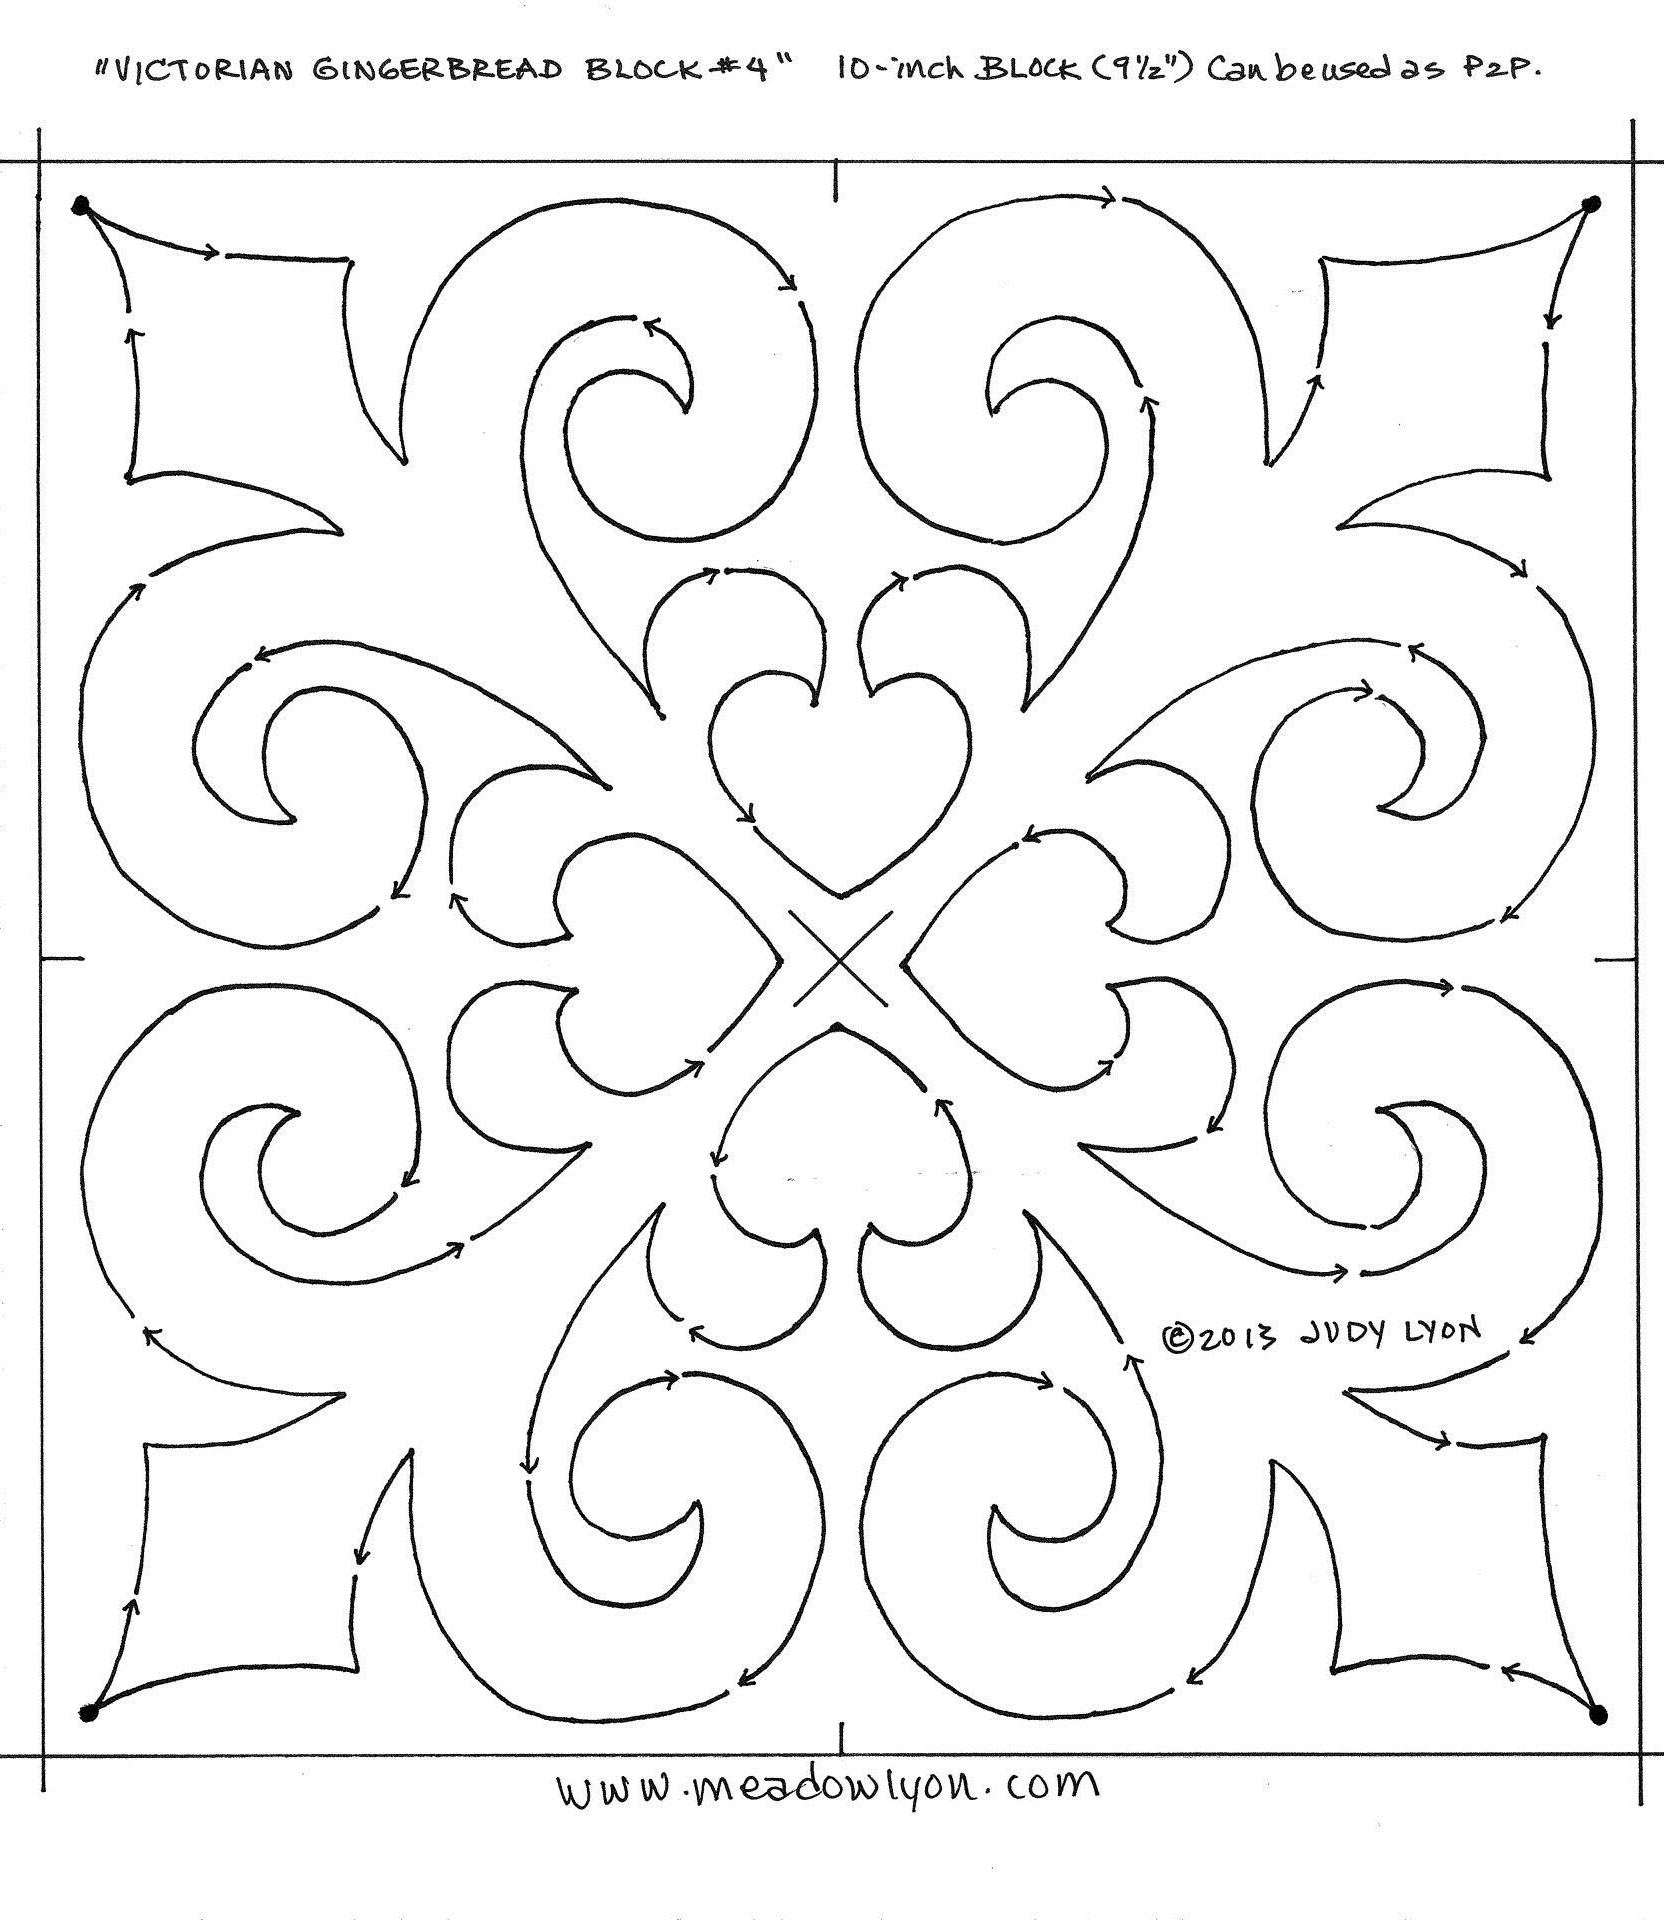 Victorian Gingerbread Border KC block 4